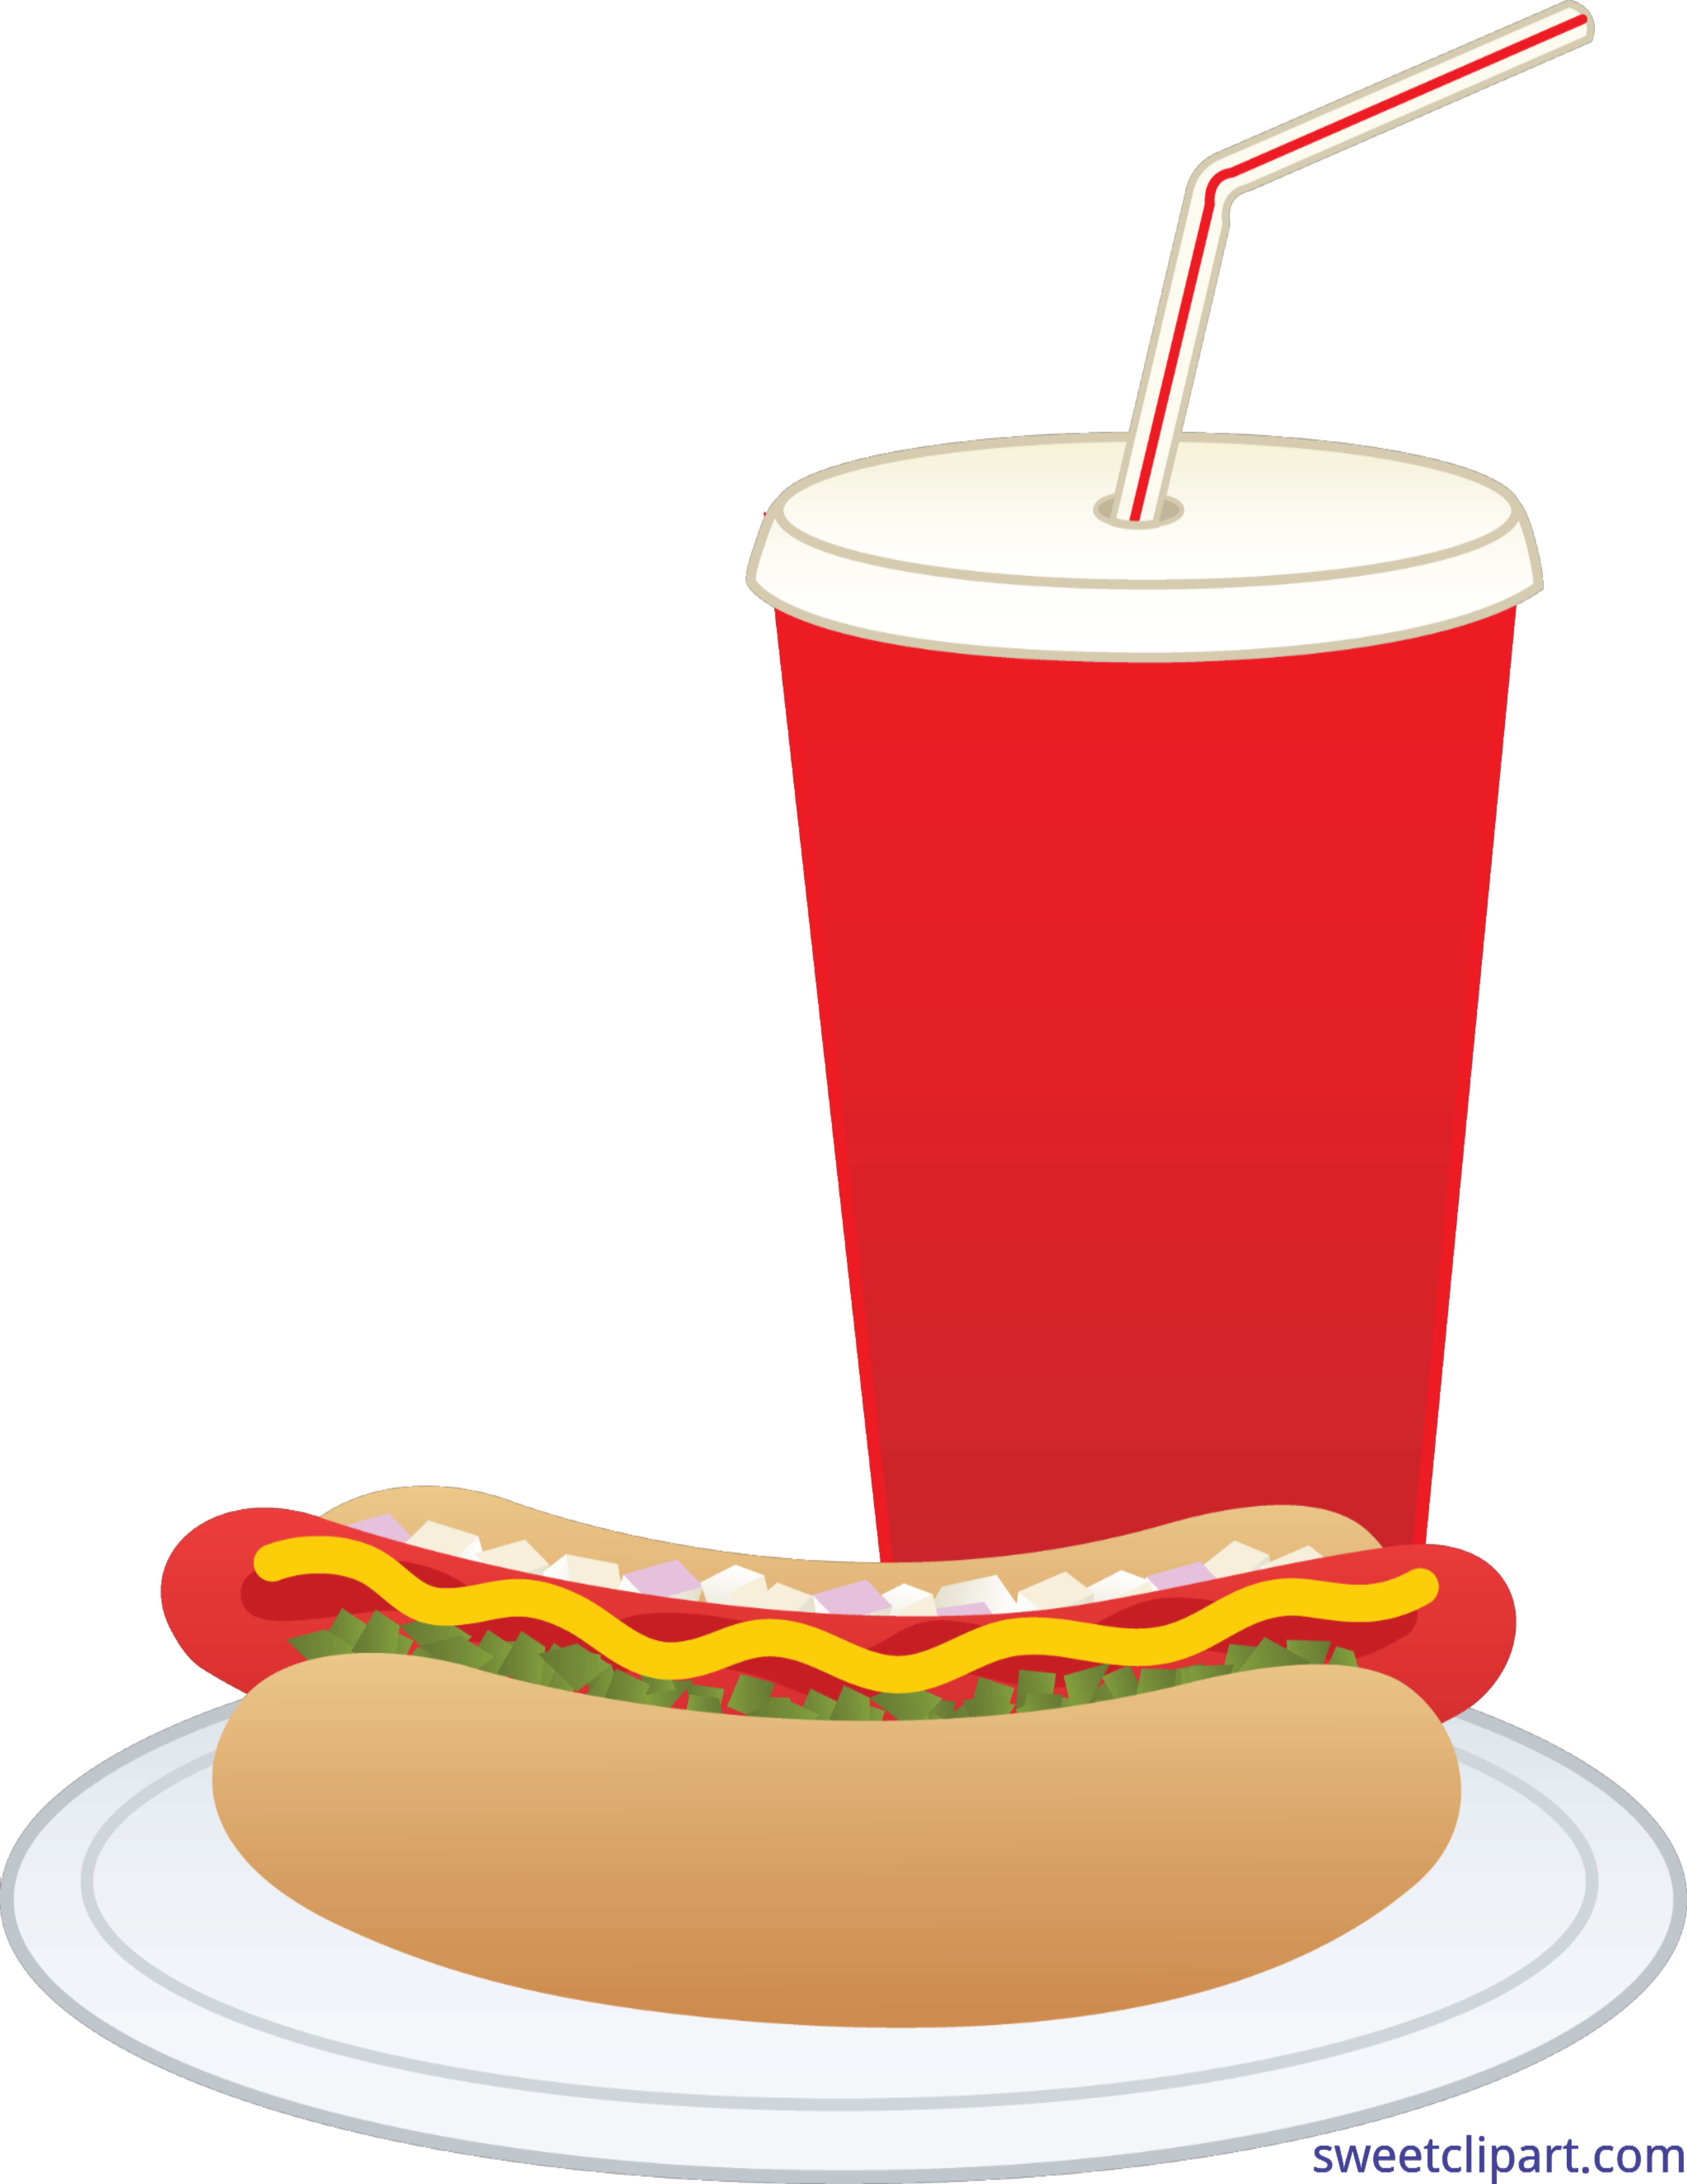 Hot dog chips soda clipart clipart royalty free library Hot Dog Clipart | Free download best Hot Dog Clipart on ClipArtMag.com clipart royalty free library